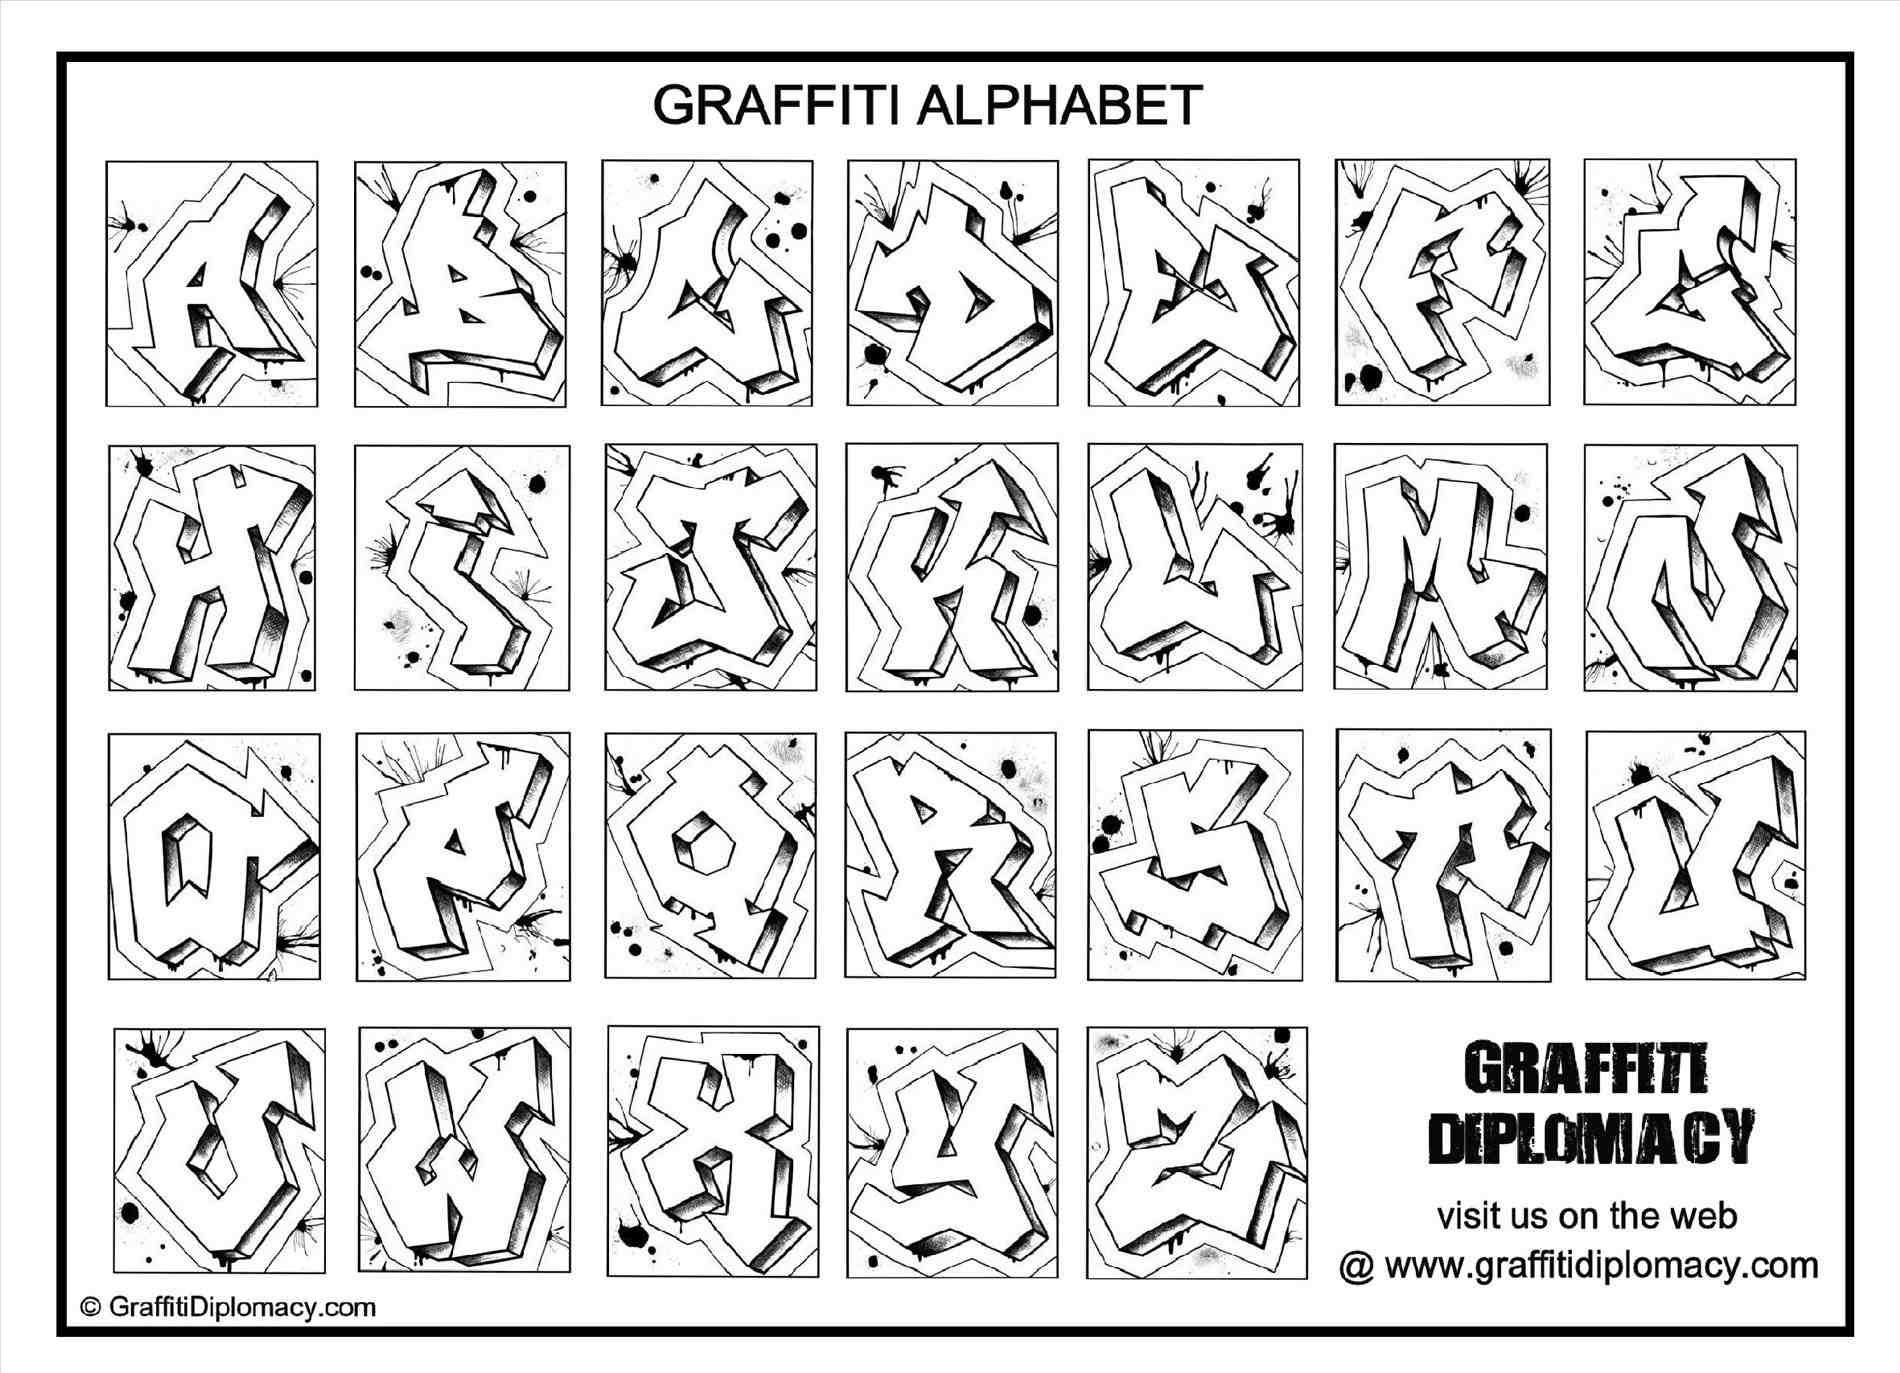 Free How To Draw Graffiti Letters A-Z Stepstep Printable Abc - Free Printable Graffiti Letters Az